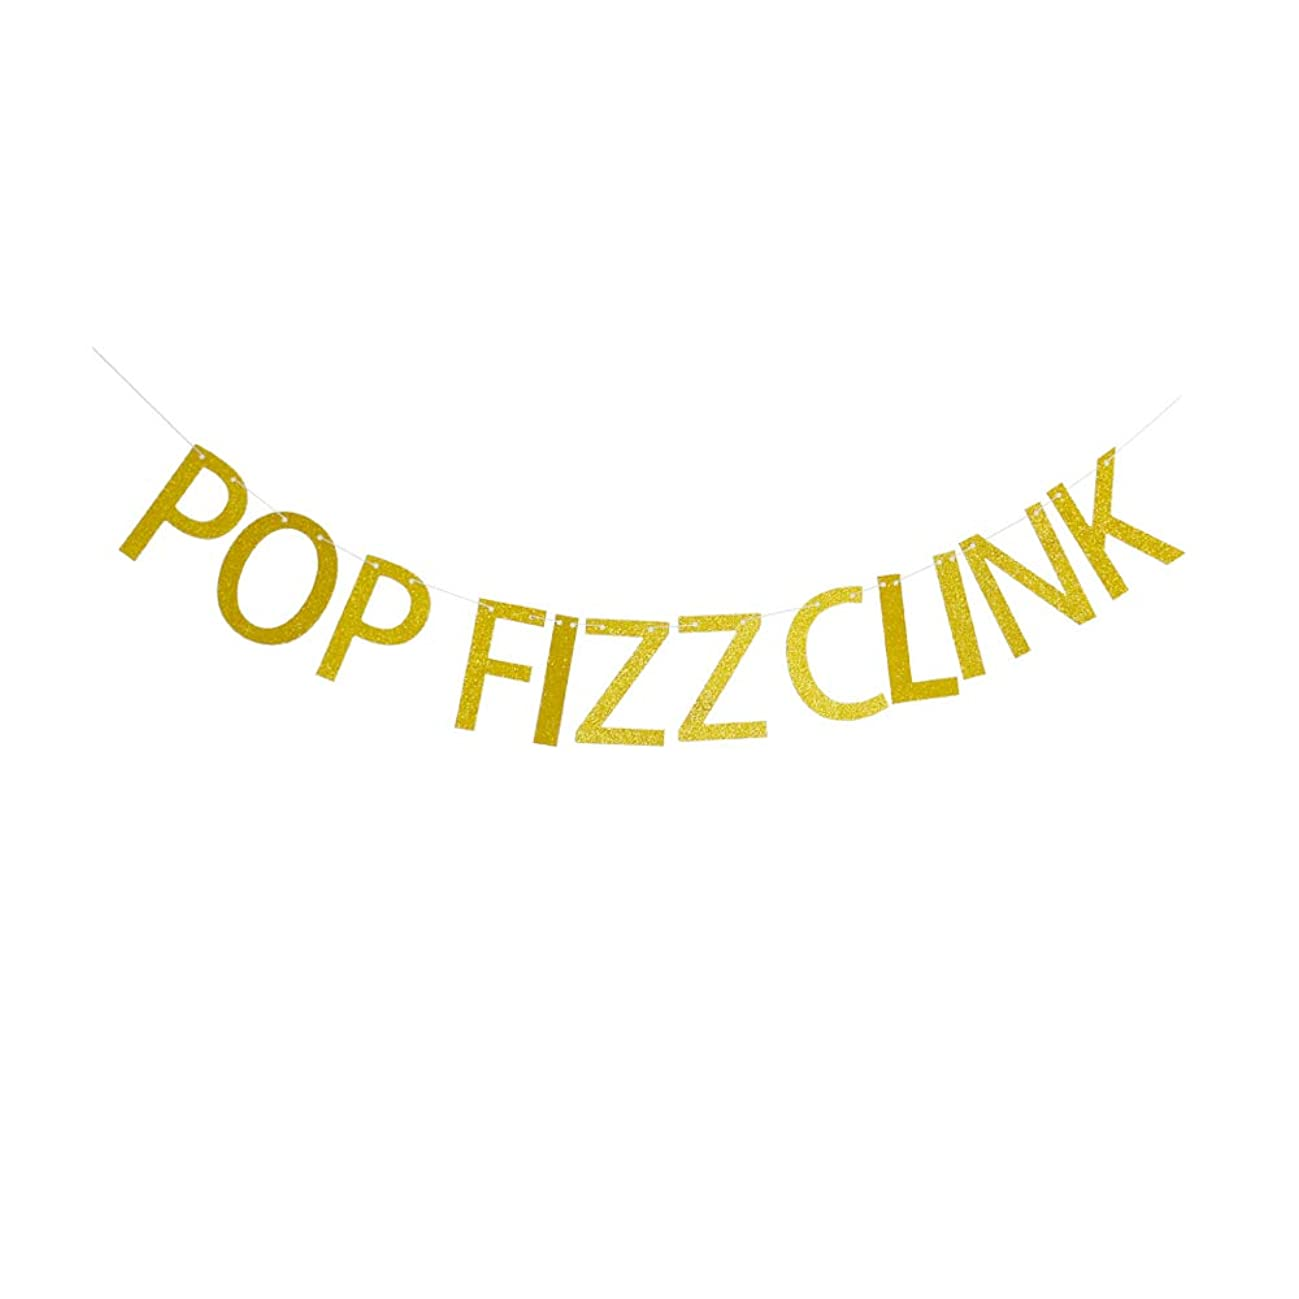 Pop Fizz Clink Banner, for Engagement/Wedding/ Retirement/Birthday/ Bachelorette Party Decorations, Gold Glitter Party Supplies